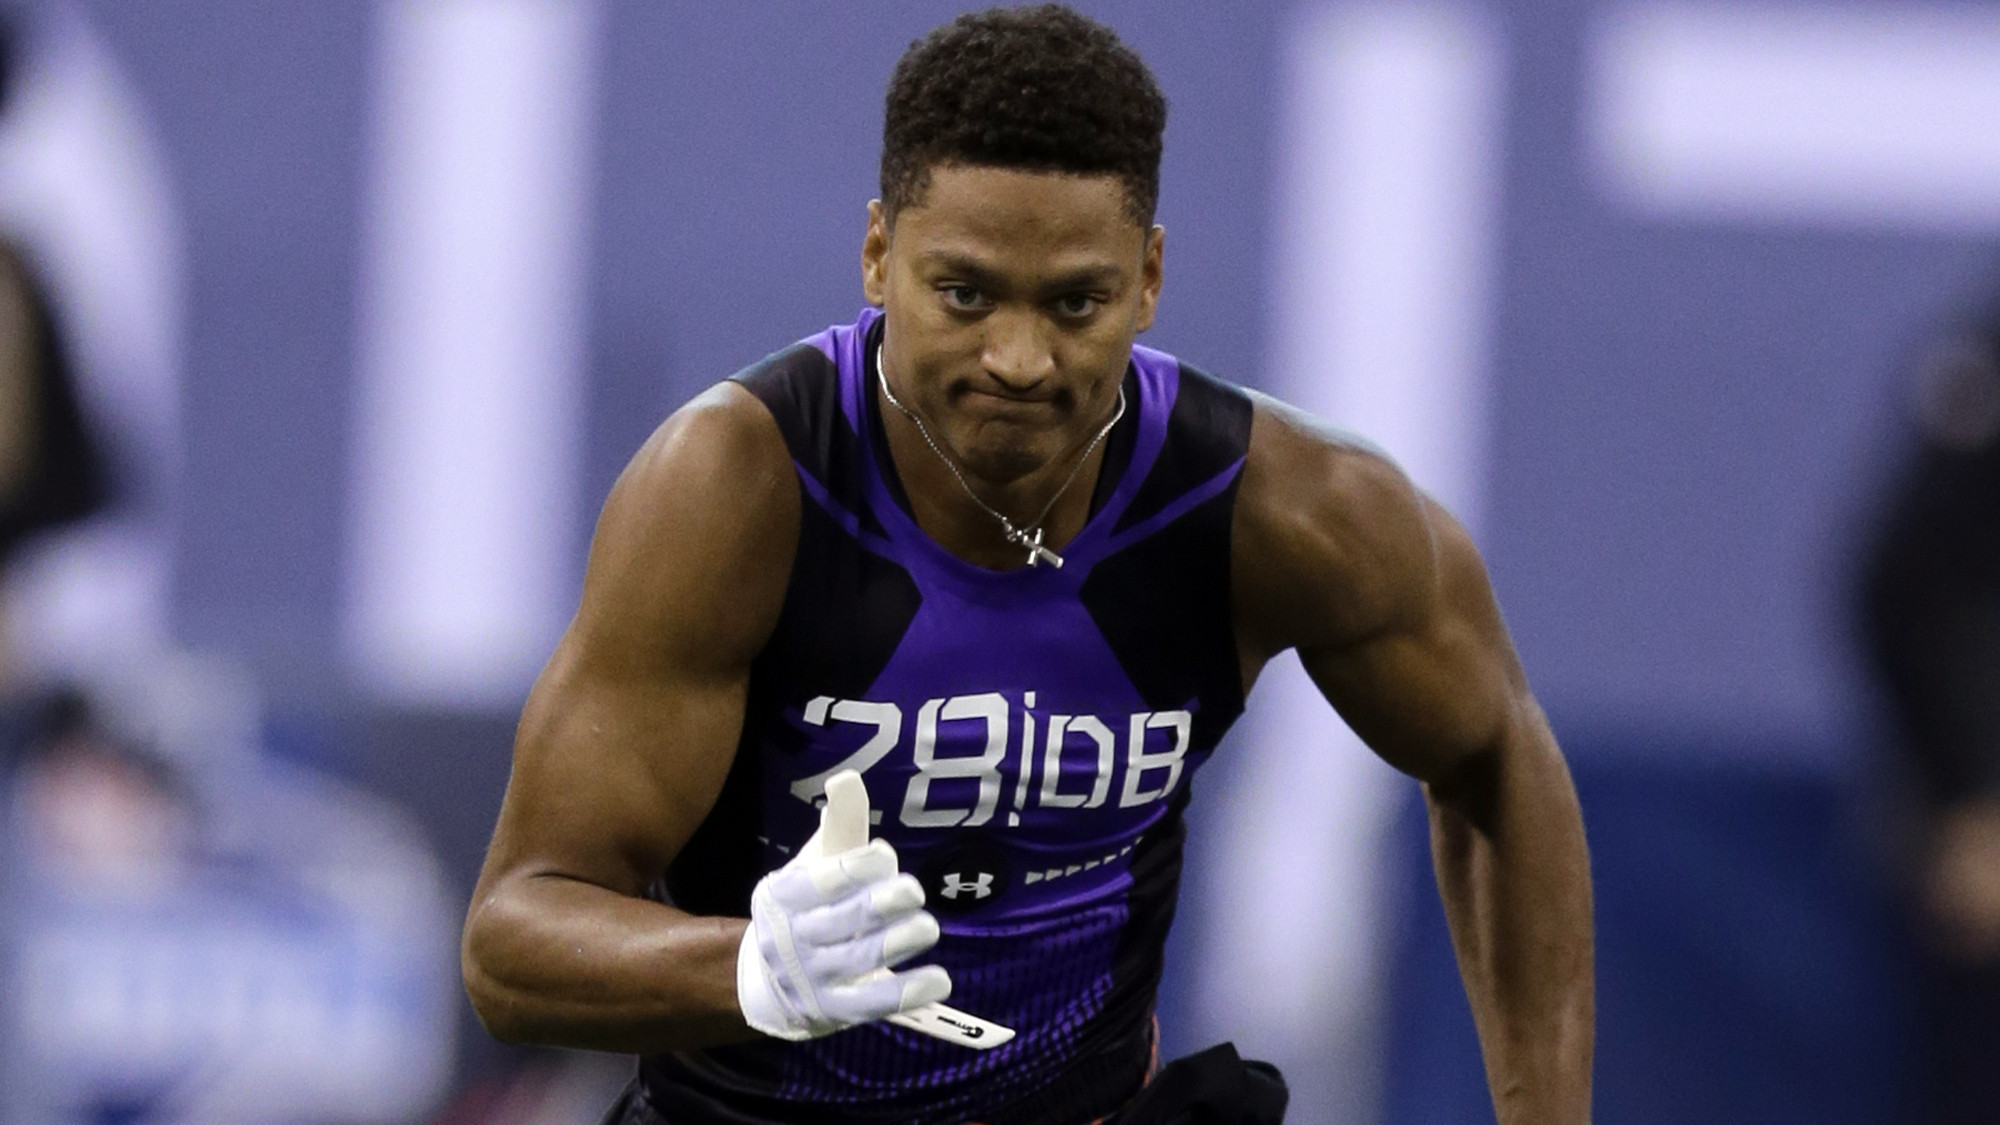 Kevin Johnson runs 4 52 in 40 yard dash at NFL scouting bine